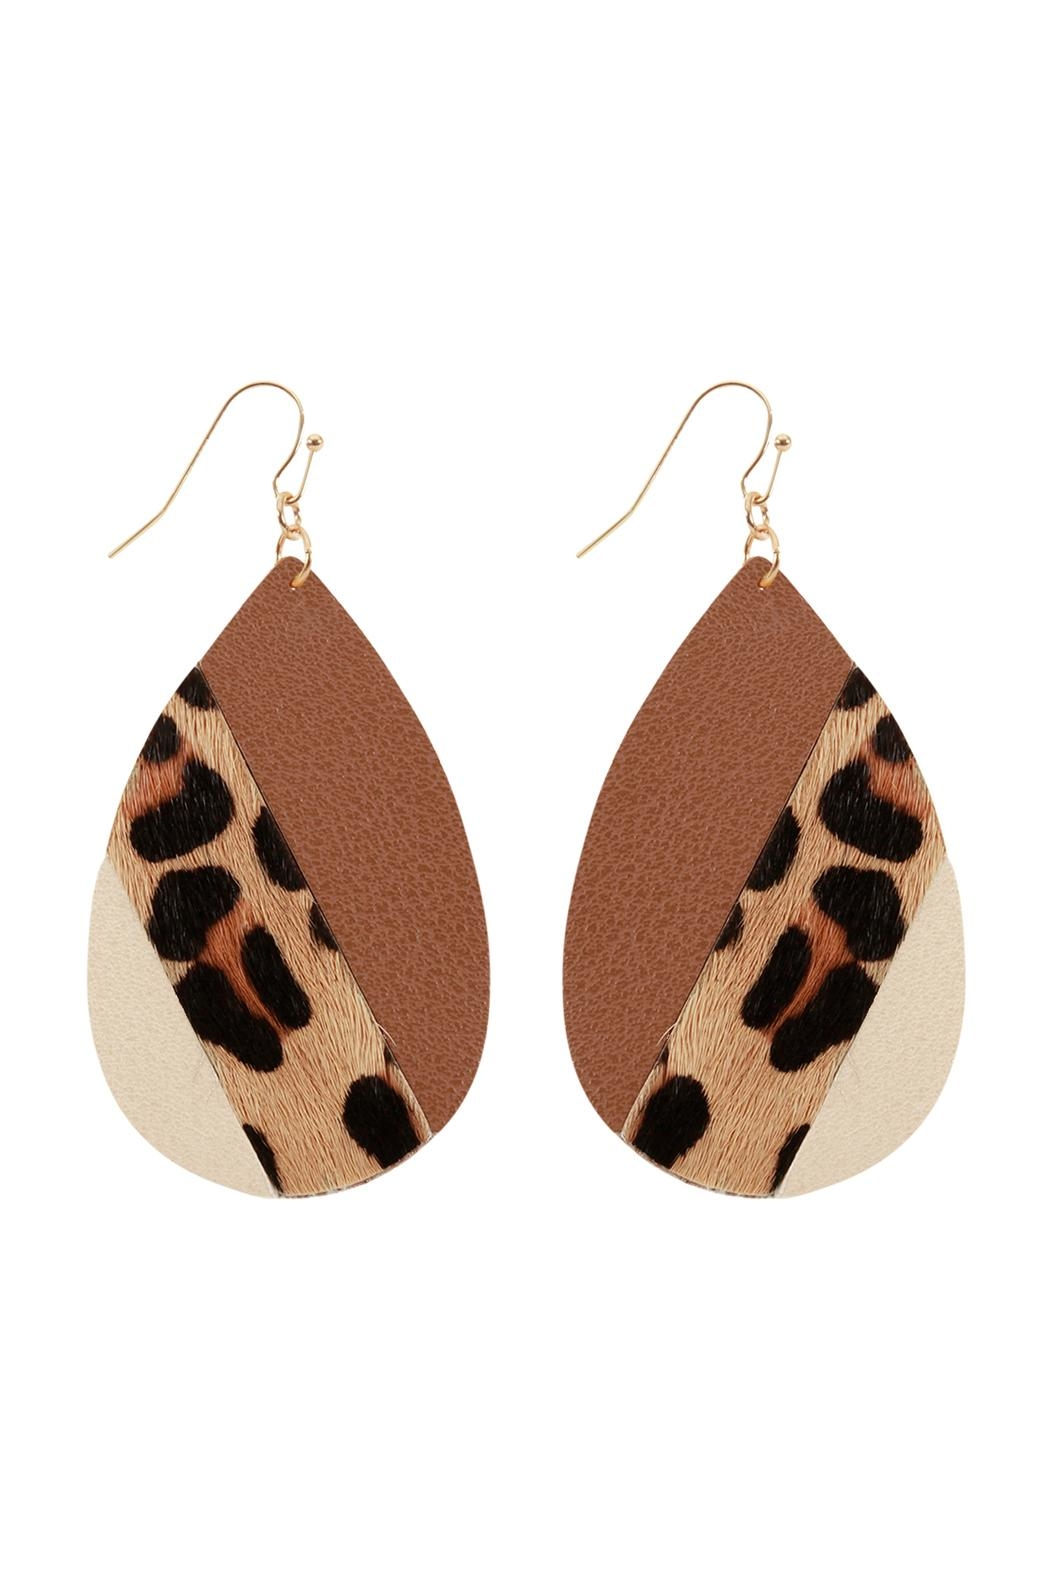 Riah Fashion Leather Multi-Fish-Hook Teardrop-Earrings - Main Image